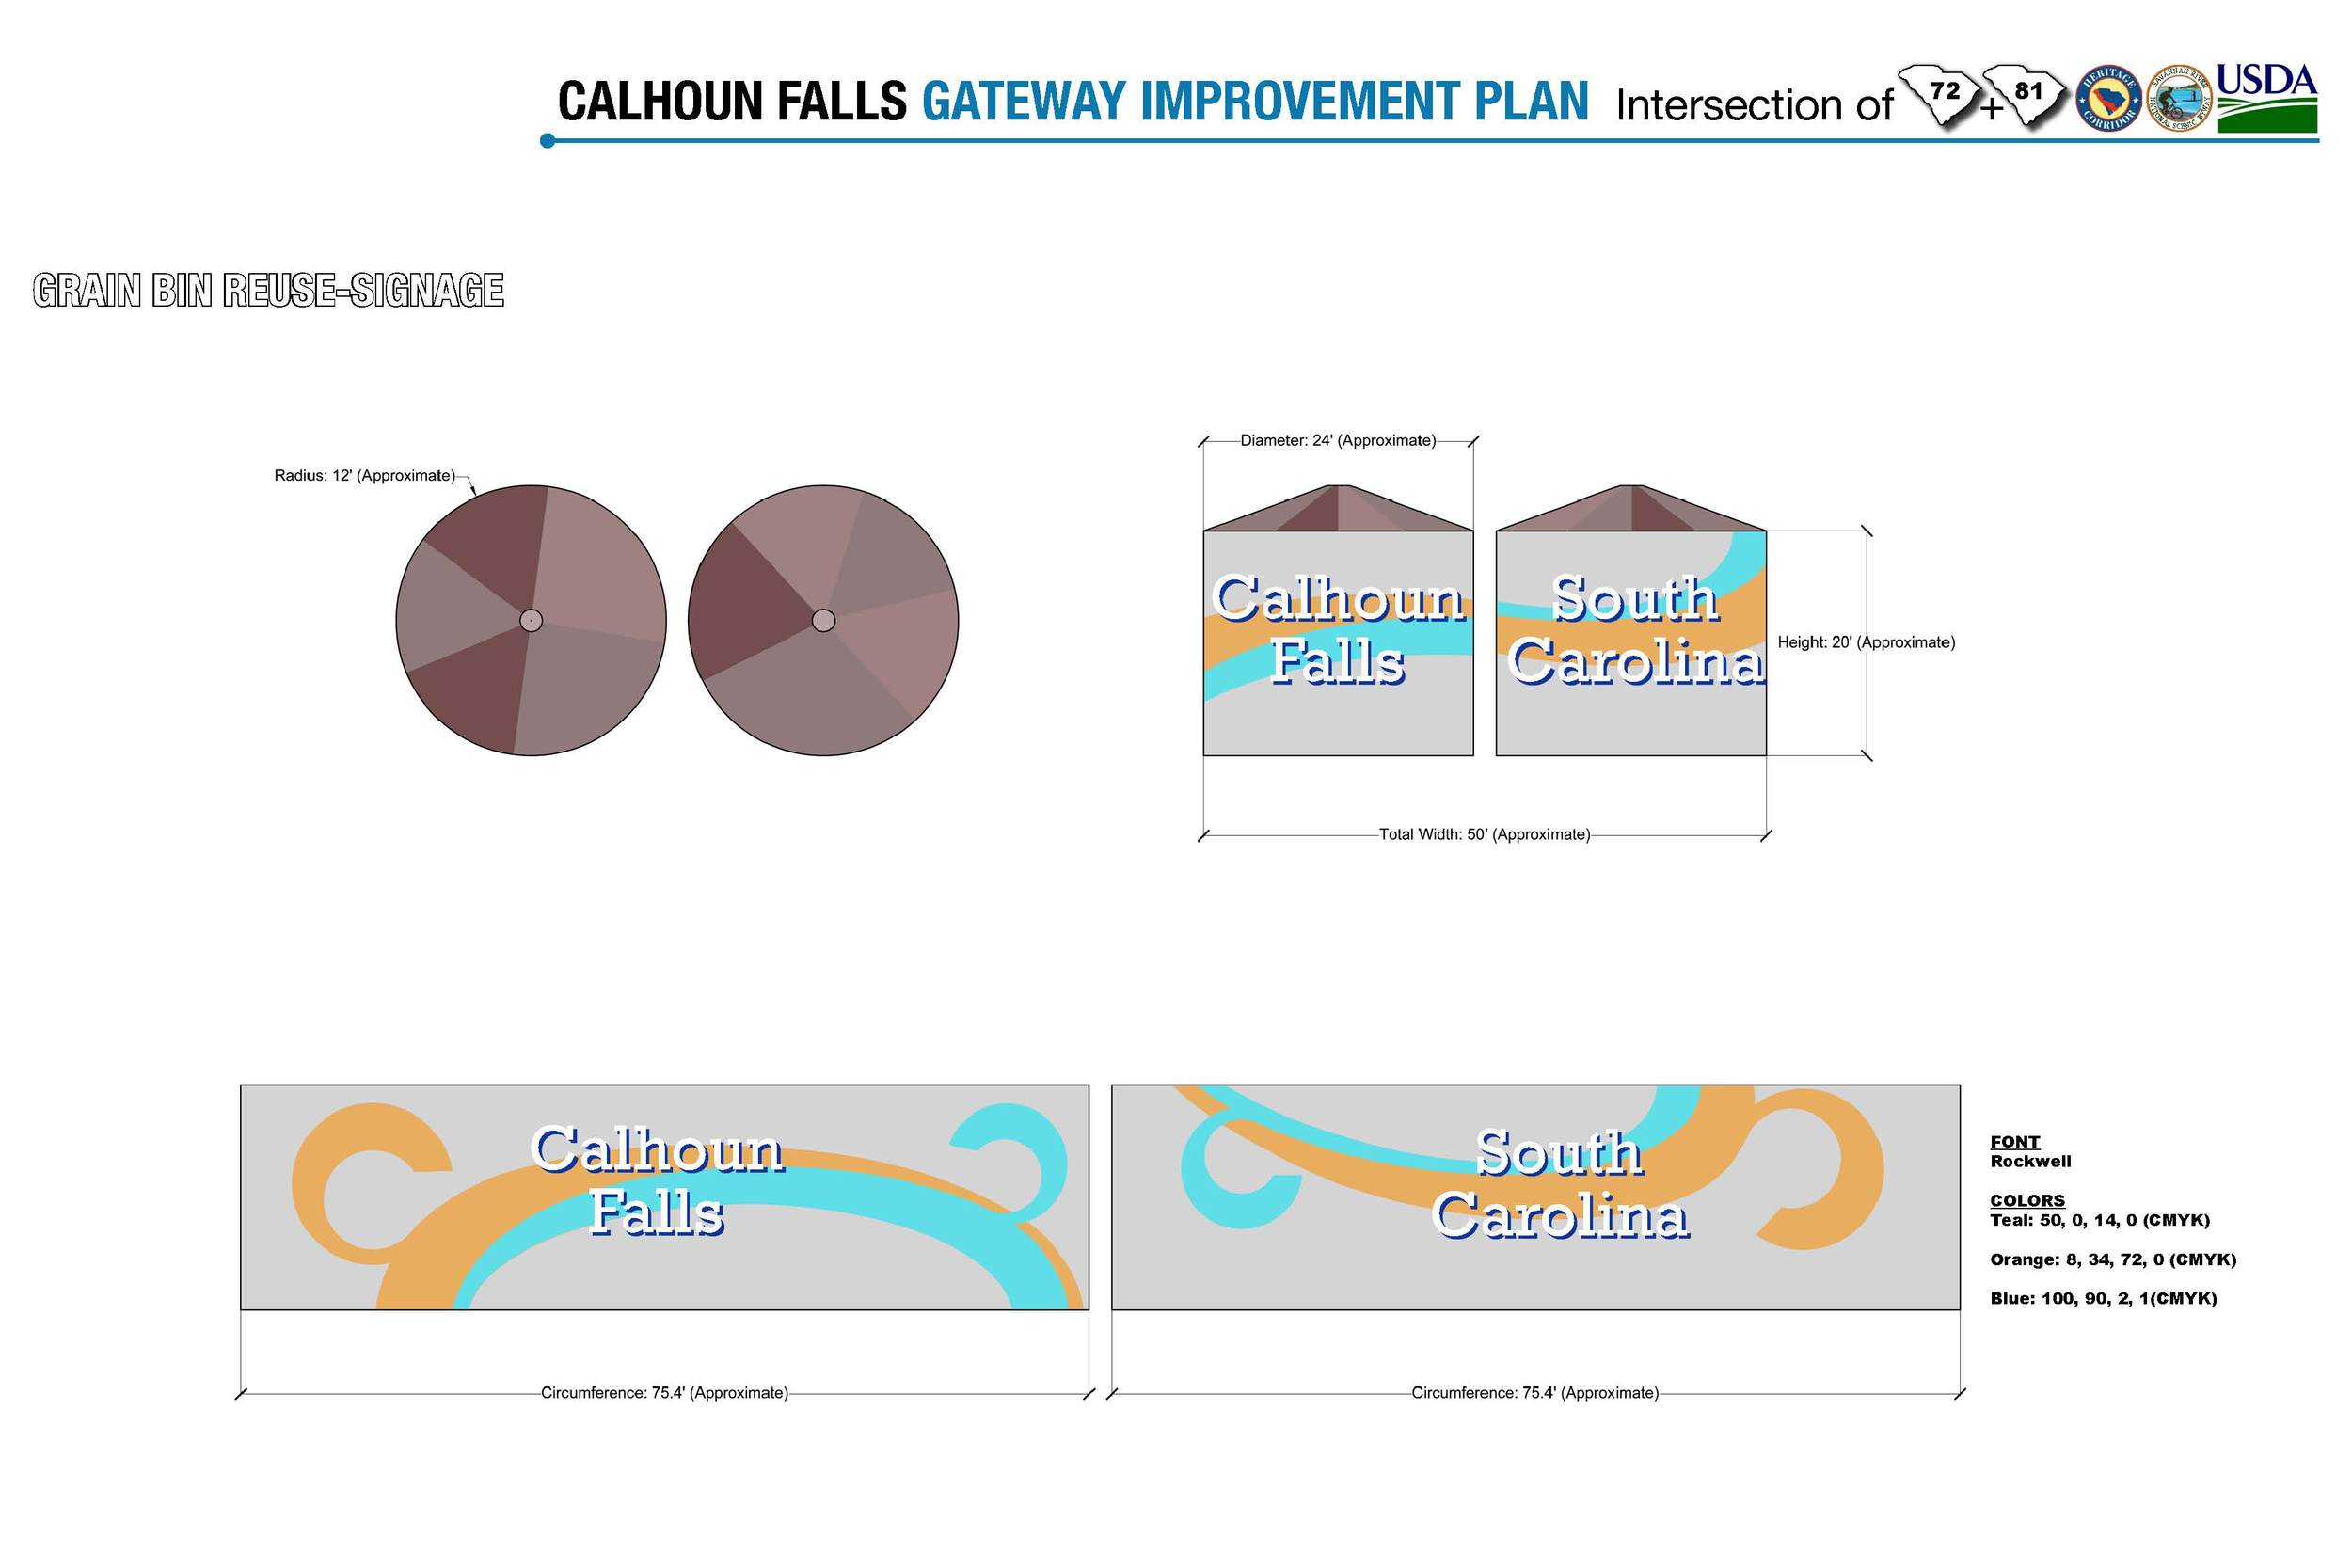 CalhounFalls-Intersection-Plan-091014-small_Page_4.jpg